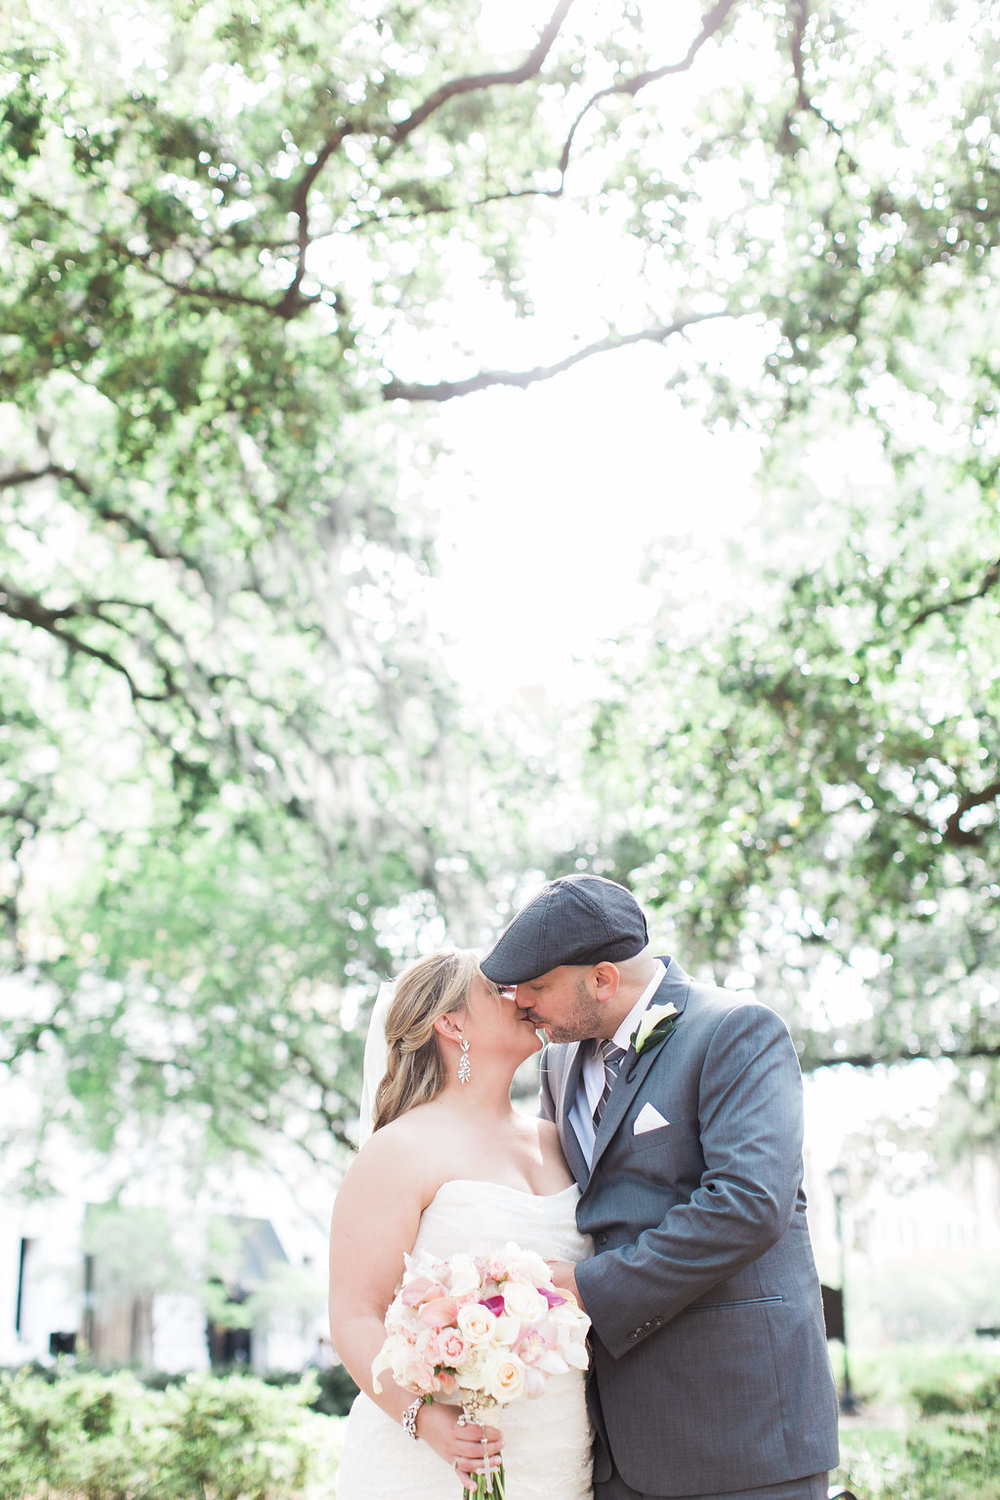 kristin-and-darren-wedding-soho-south-cafe-wormsloe-apt-b-photography-savannah-wedding-planner-savannah-weddings-southern-weddings-best-savannah-wedding-planner-17.JPG